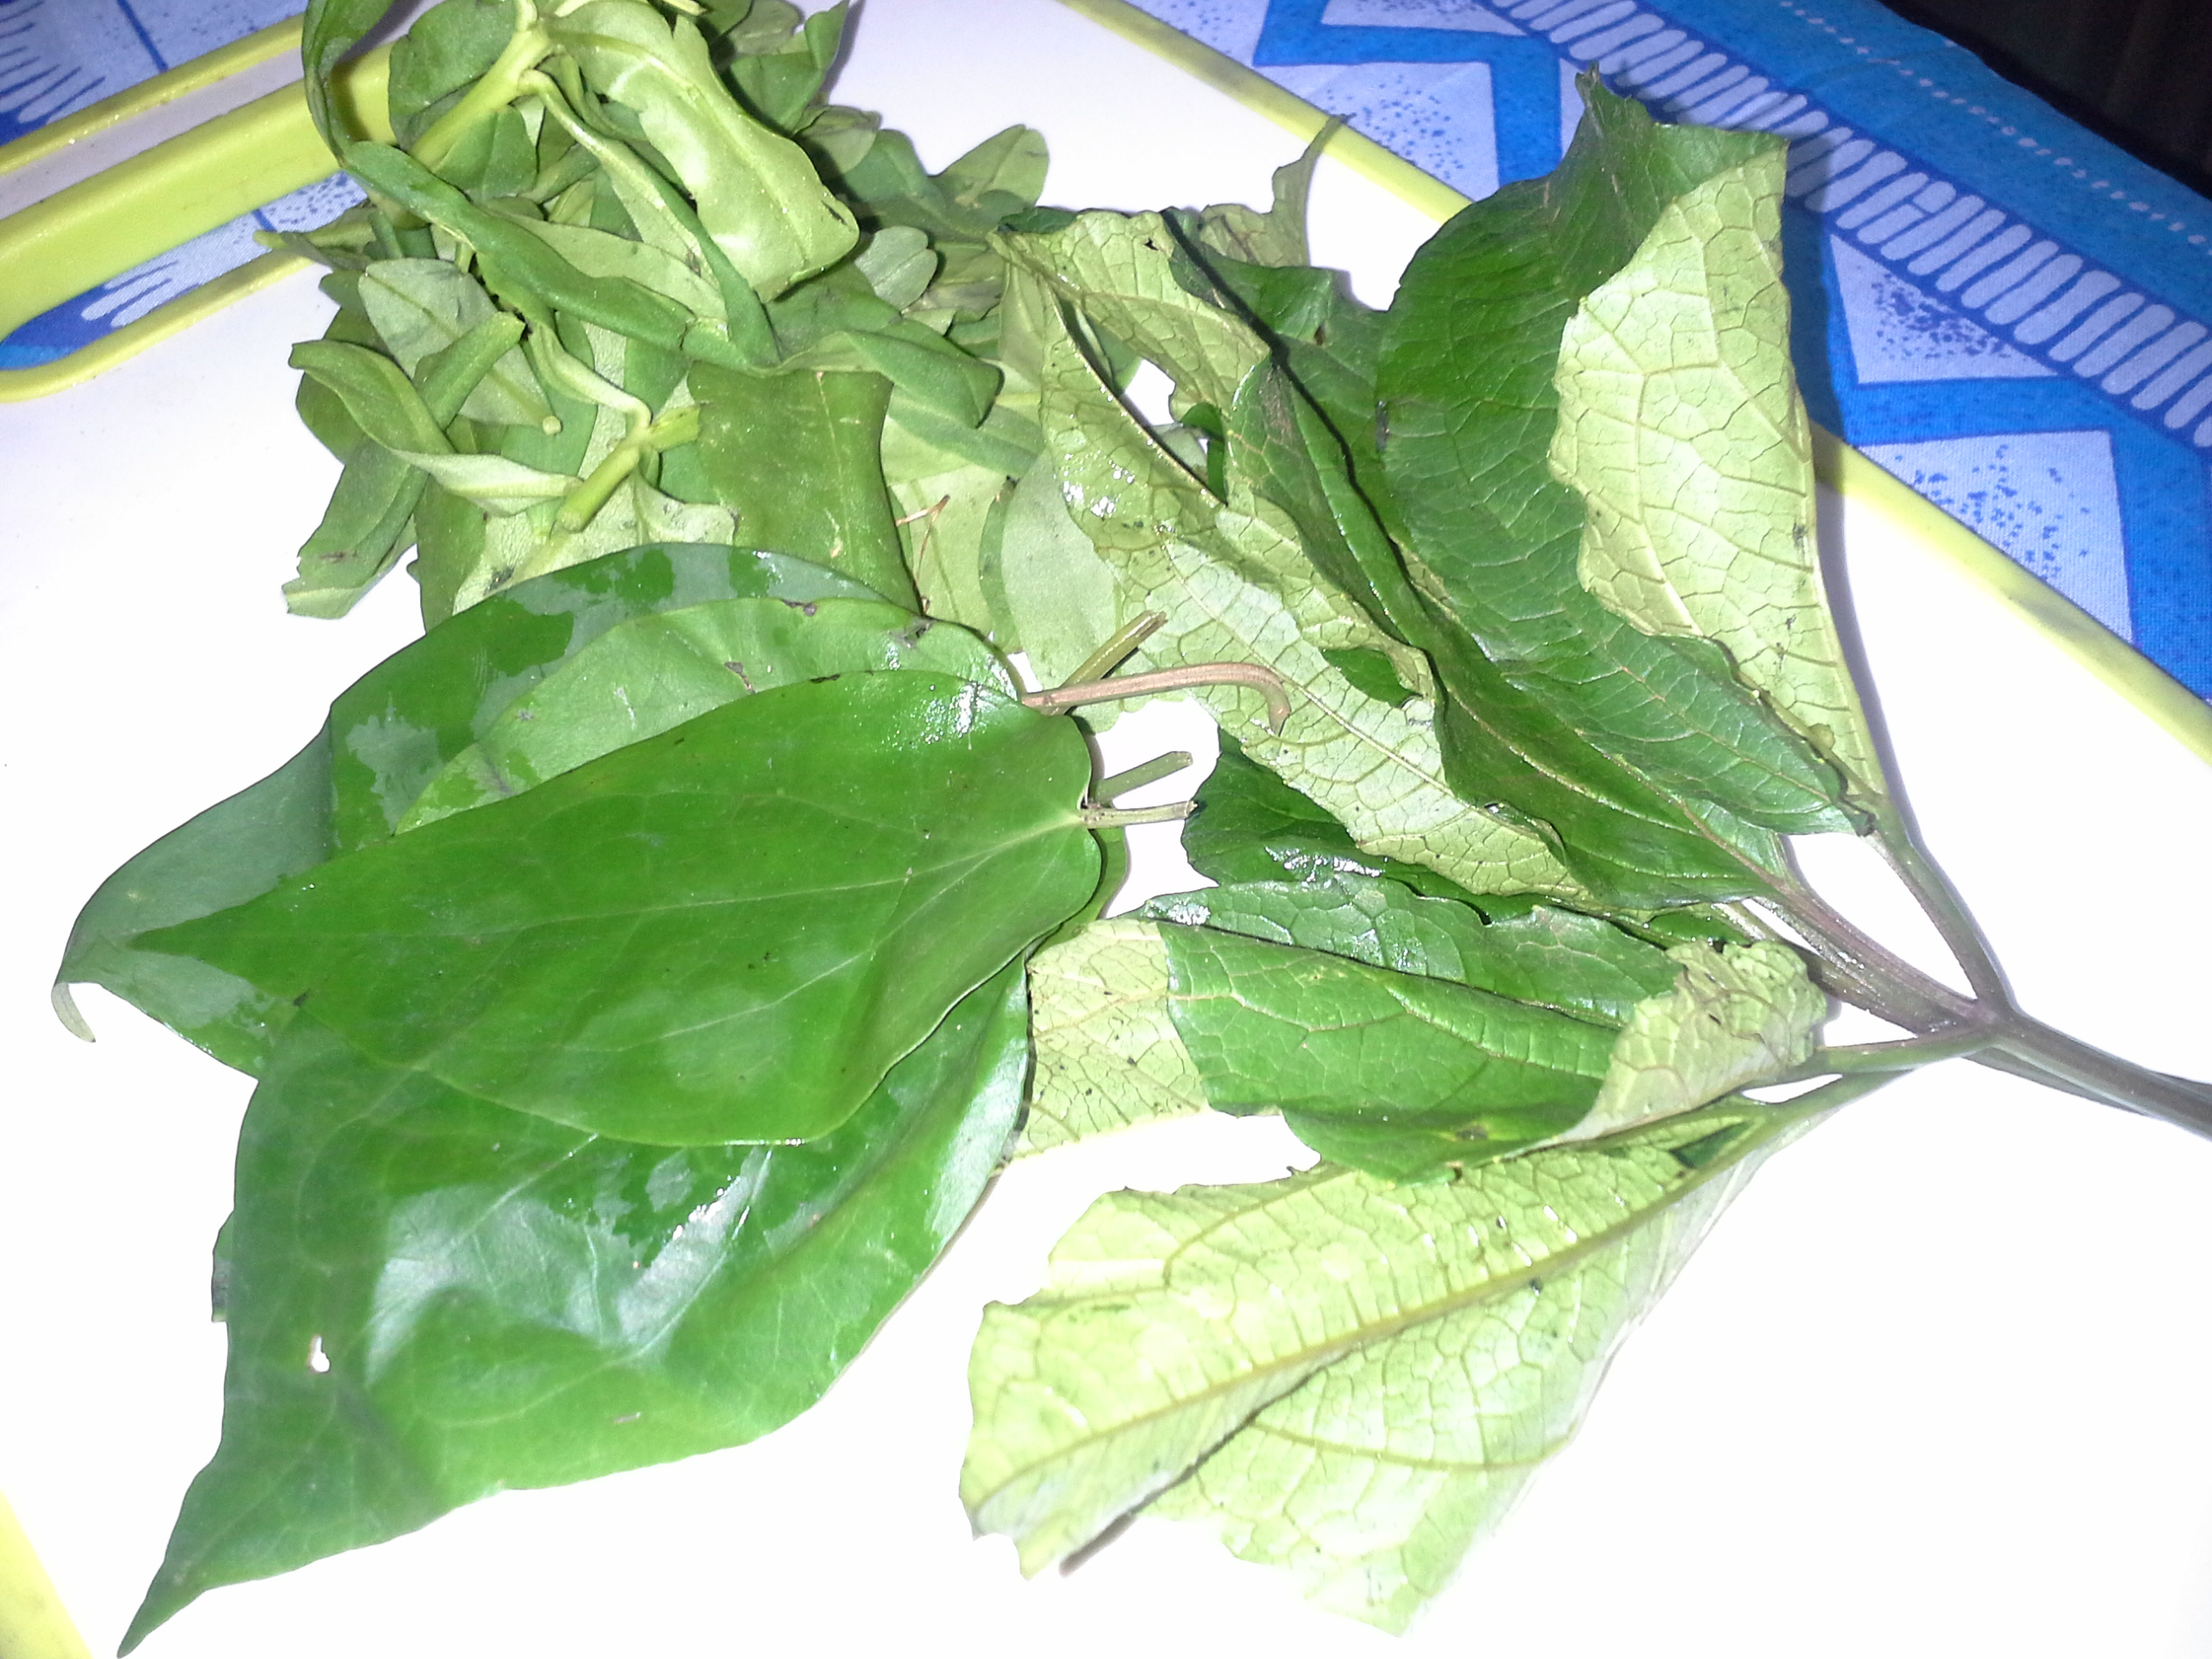 Ugu leaf, waterleaf and uziza leaf